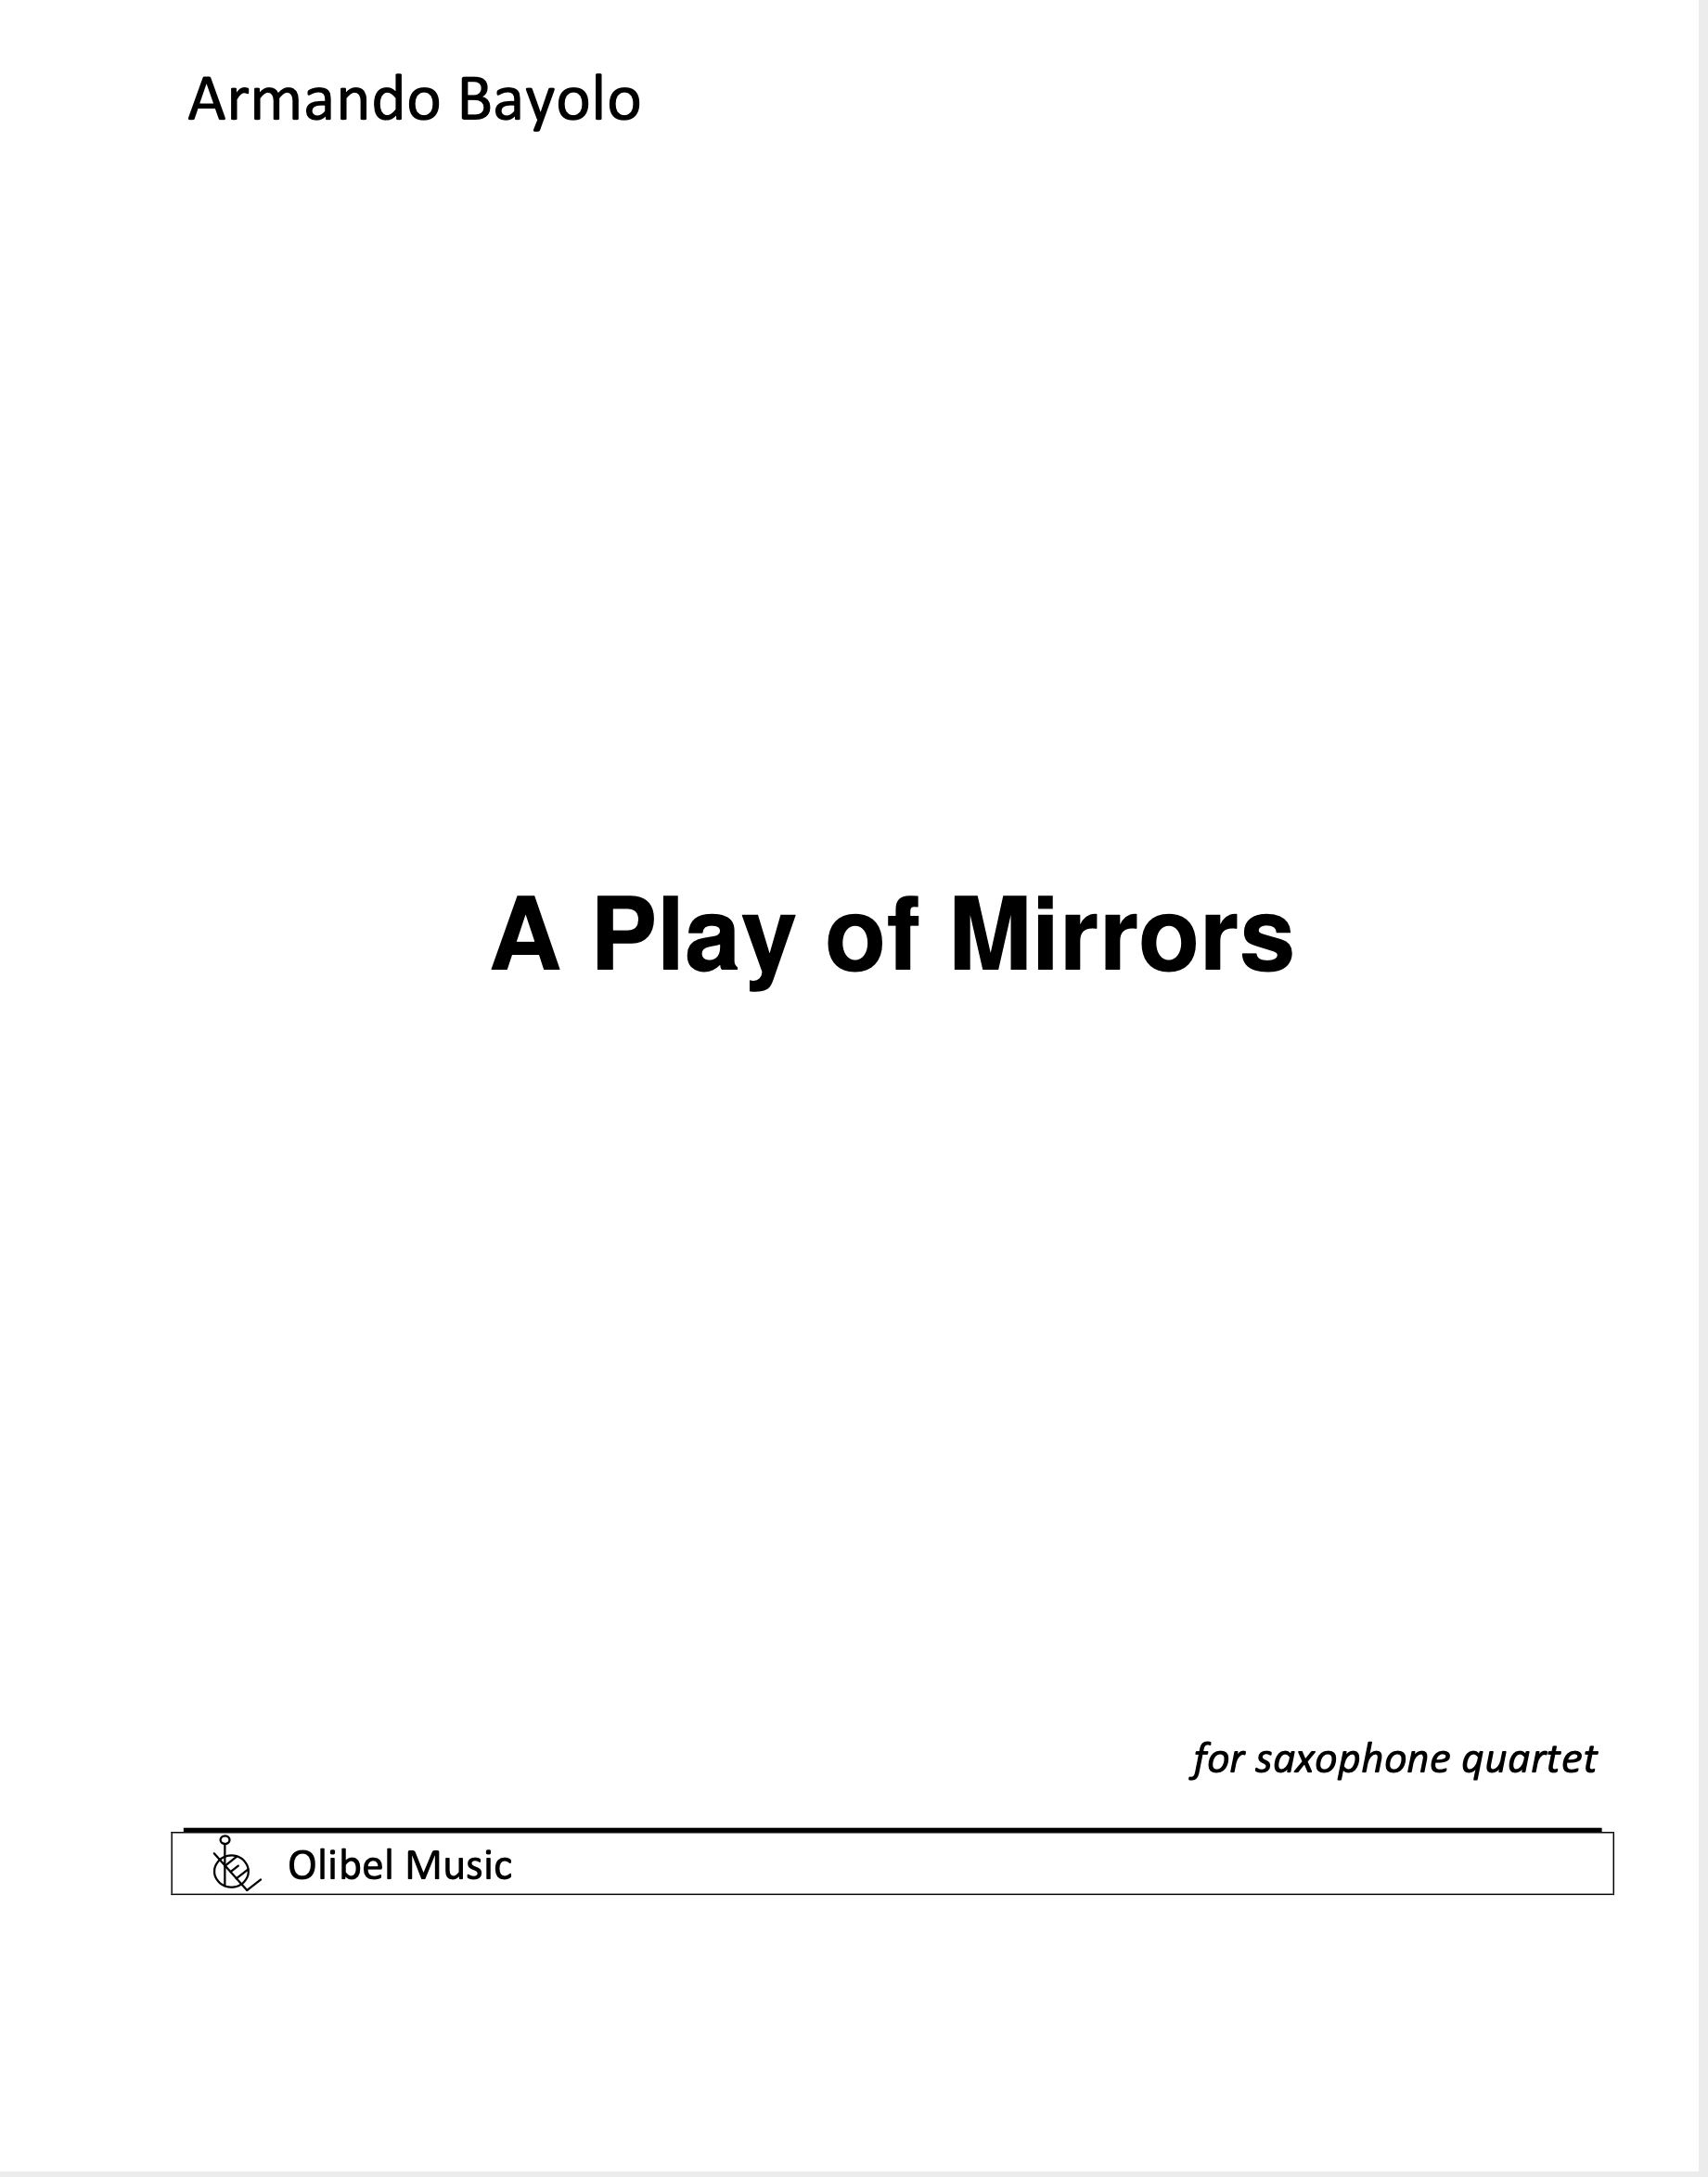 A Play Of Mirrors by Armando Bayolo